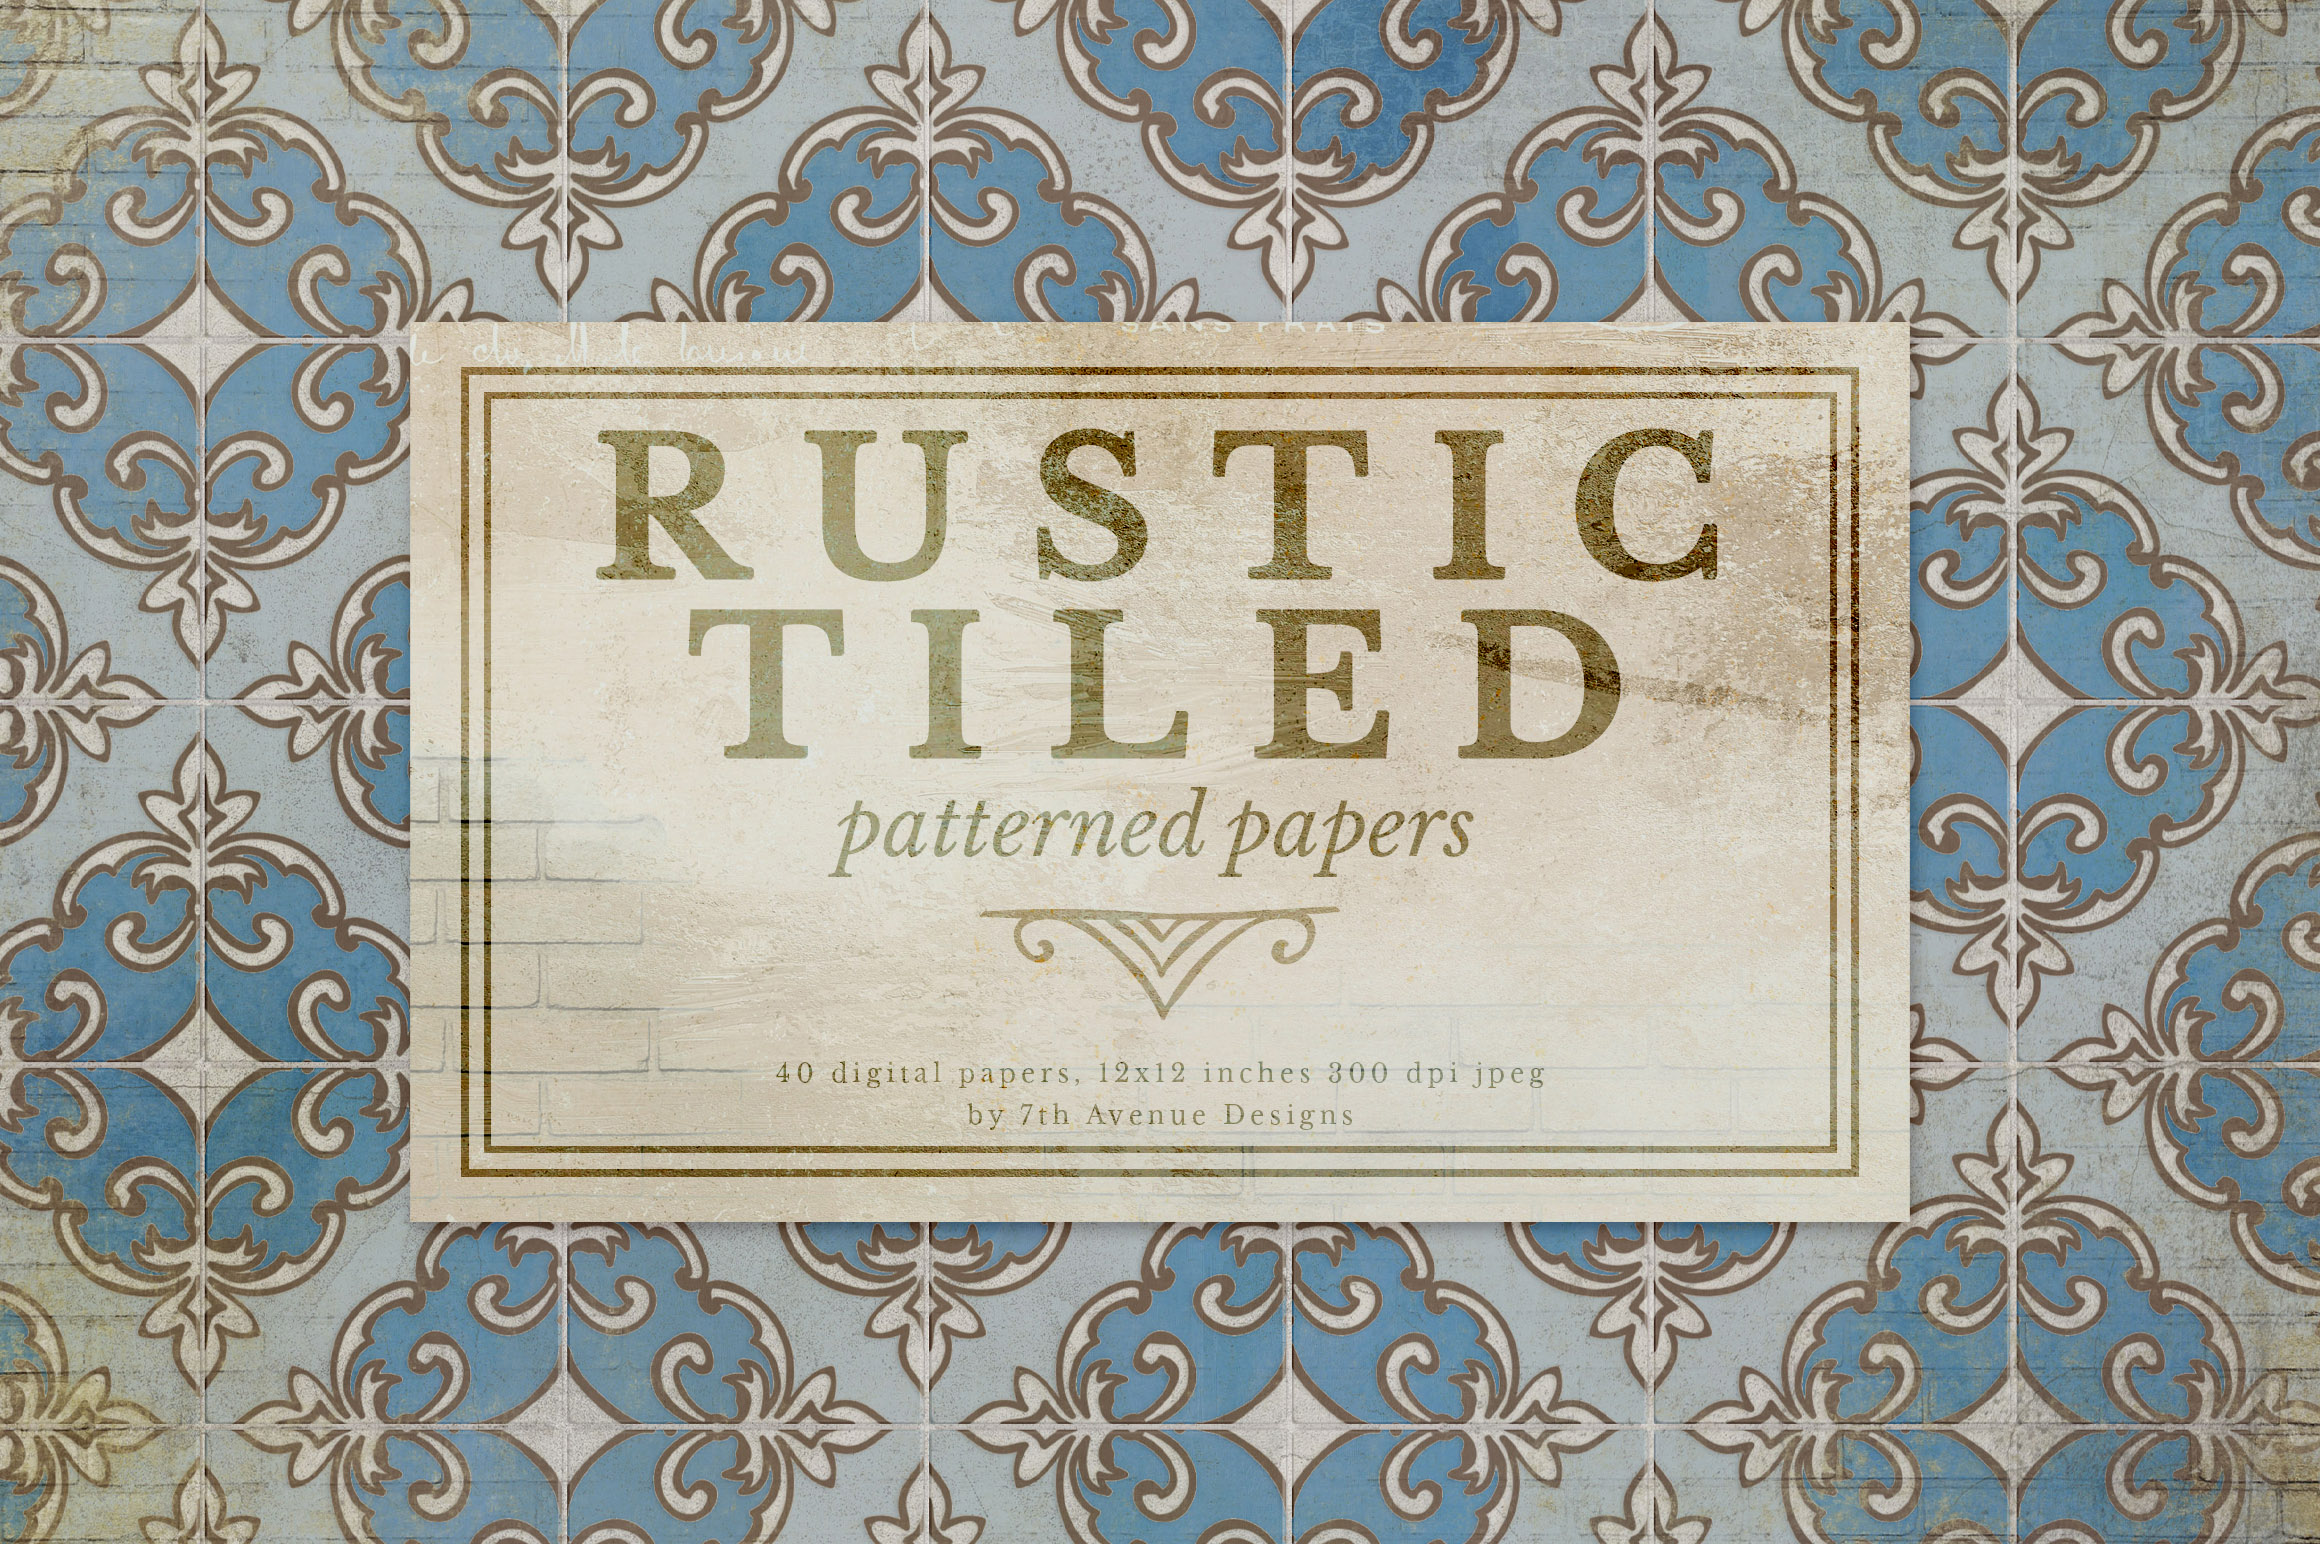 Rustic Tiled Papers